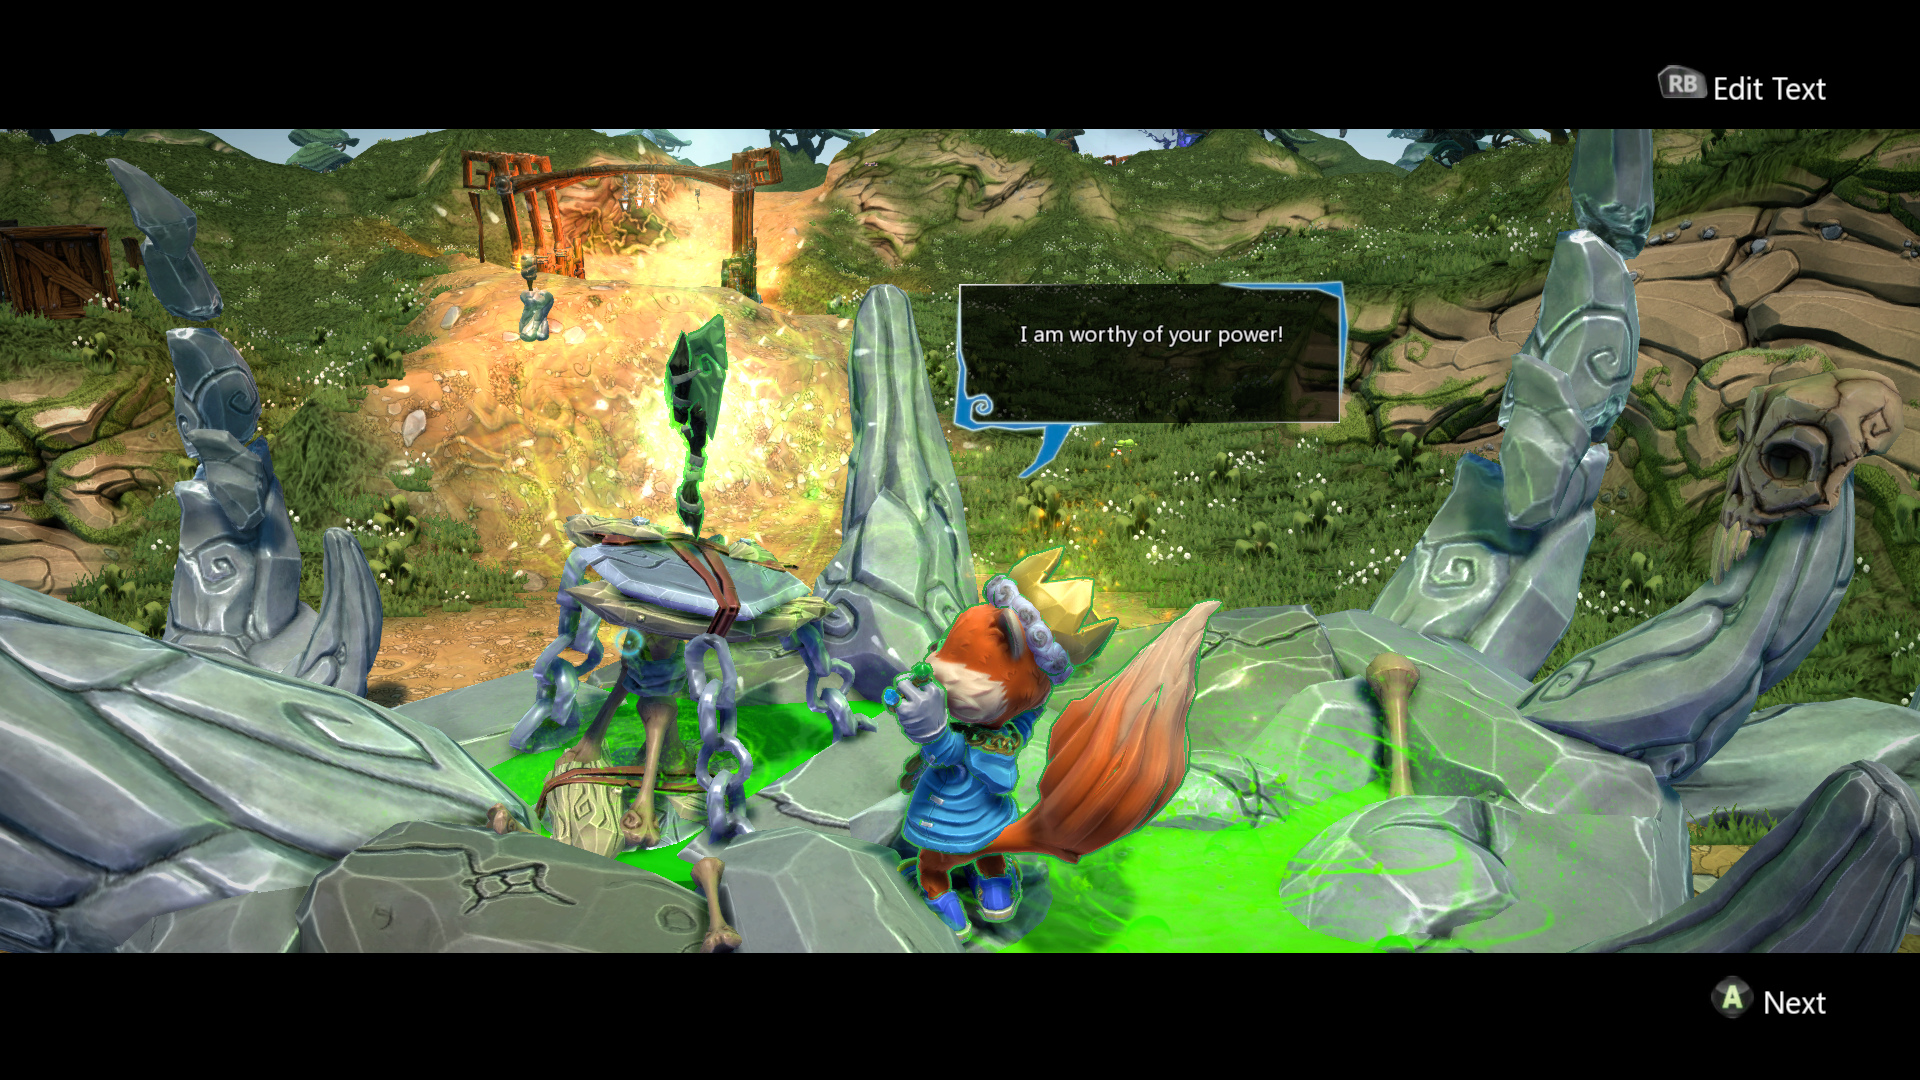 Project Spark: Conker Play & Create Bundle Xbox One I want that axe!